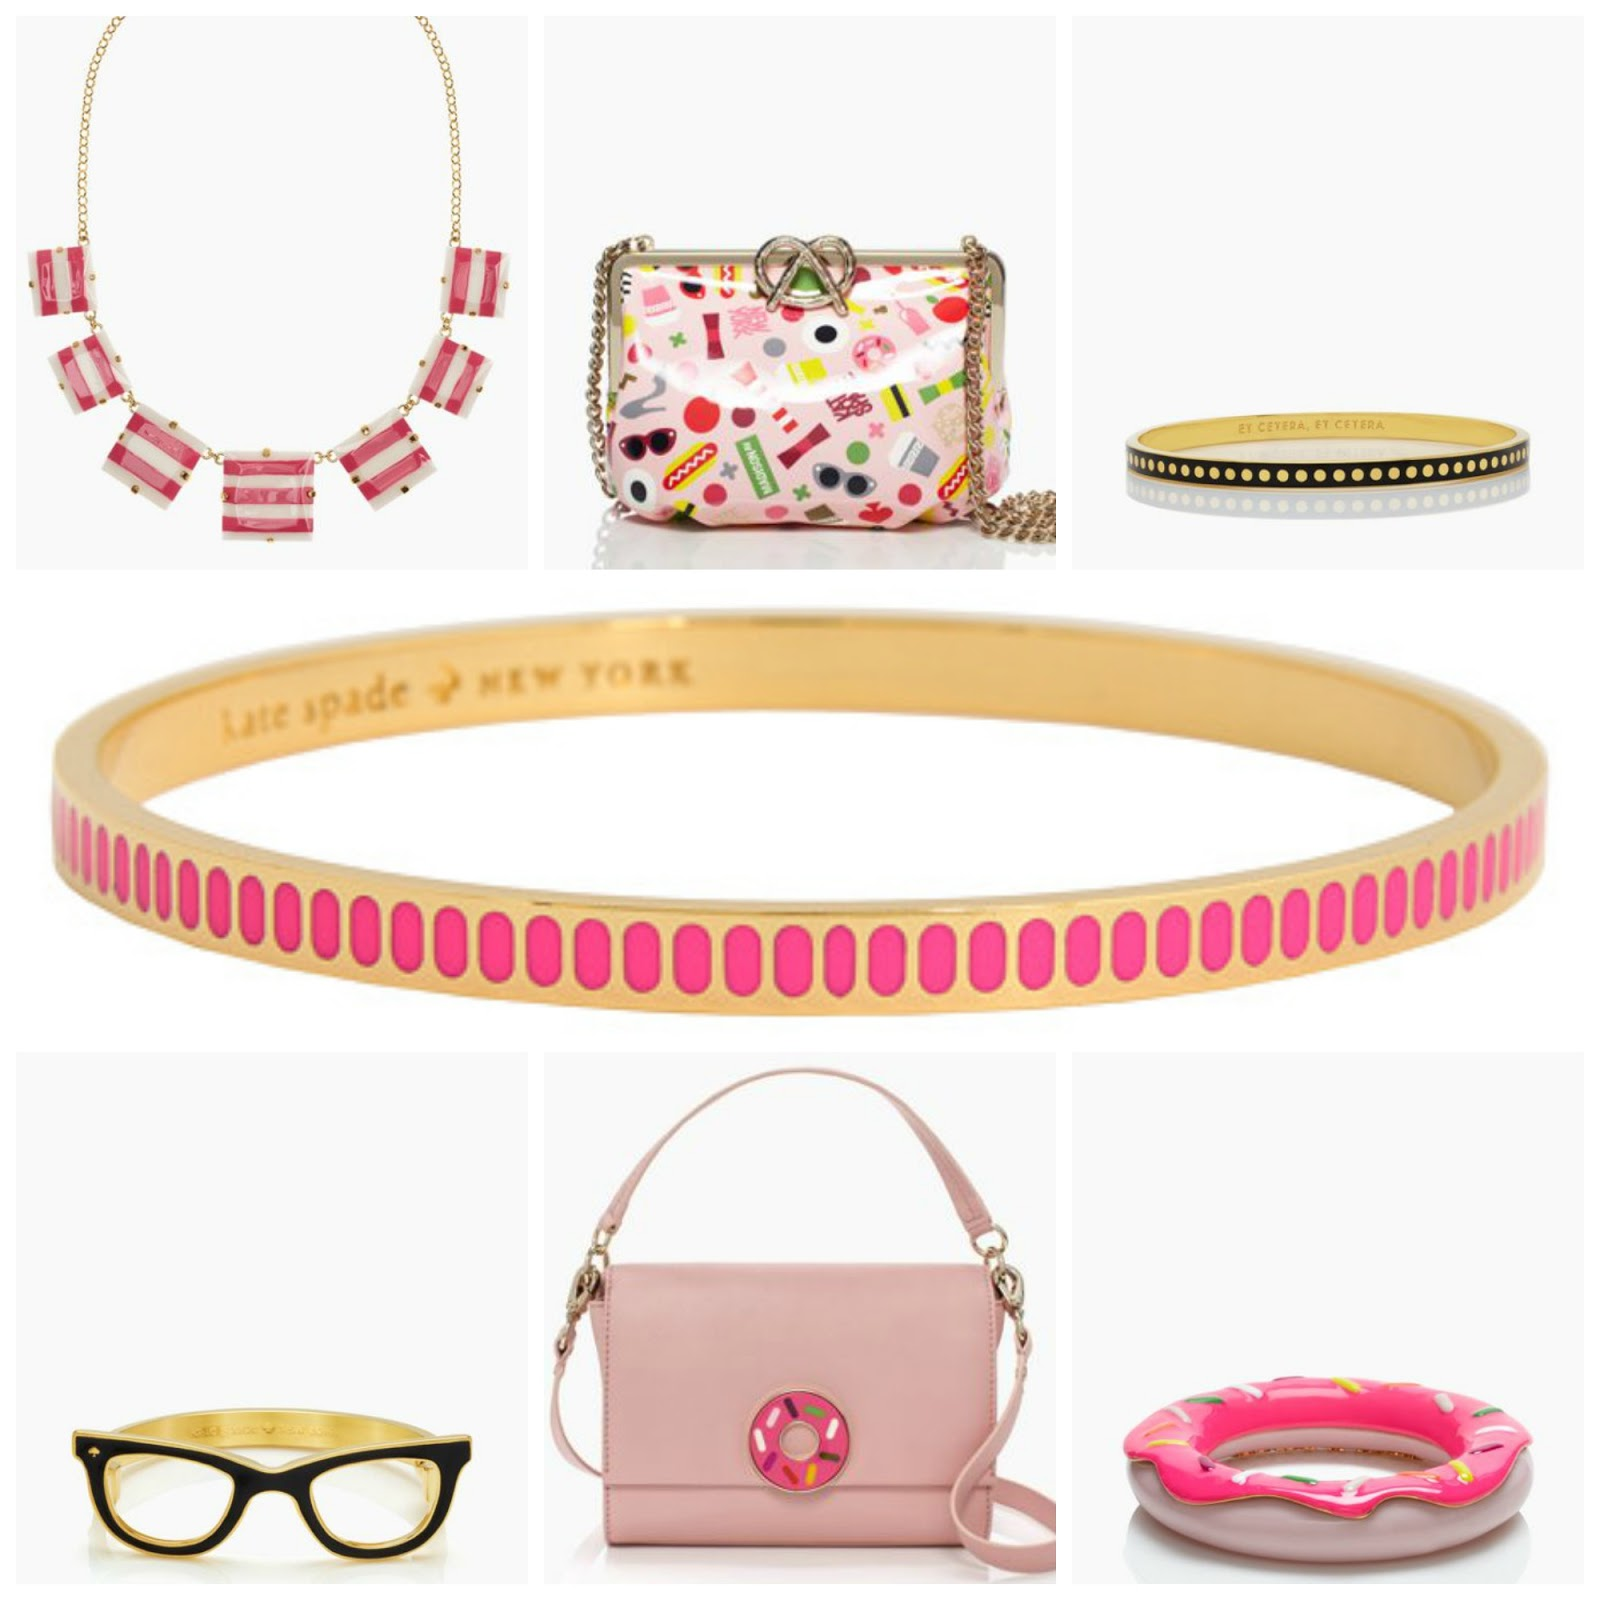 kate spade, kate spade new york, ksny, ksny x darcel, donuts, pink, black, wishlist, bangle bracelets, handbags, structured handbags, clutch, food prints